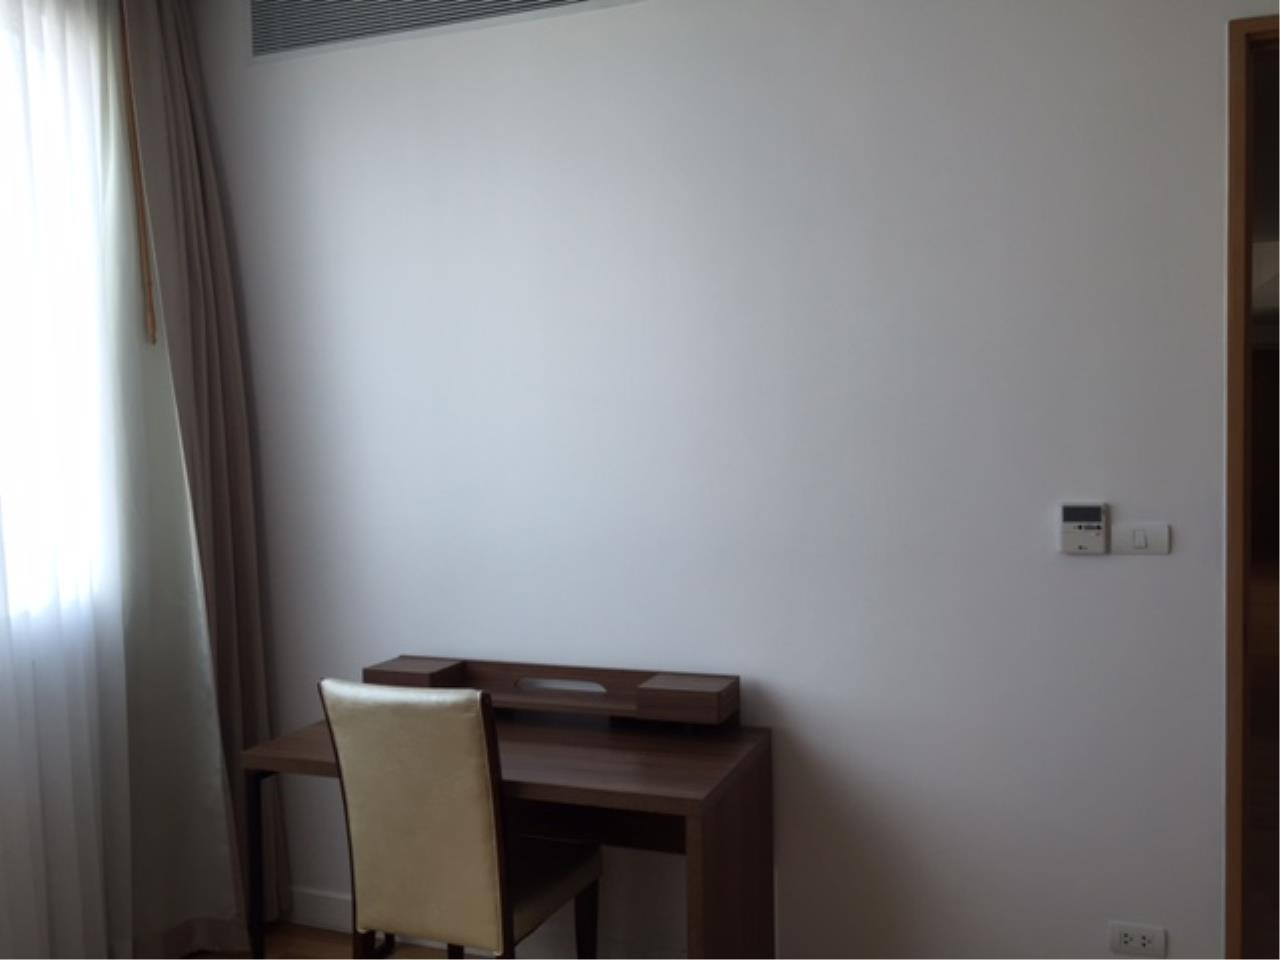 RE/MAX Properties Agency's 3 Bedroom 146 sq.m. for Rent at Millennium Residence 6